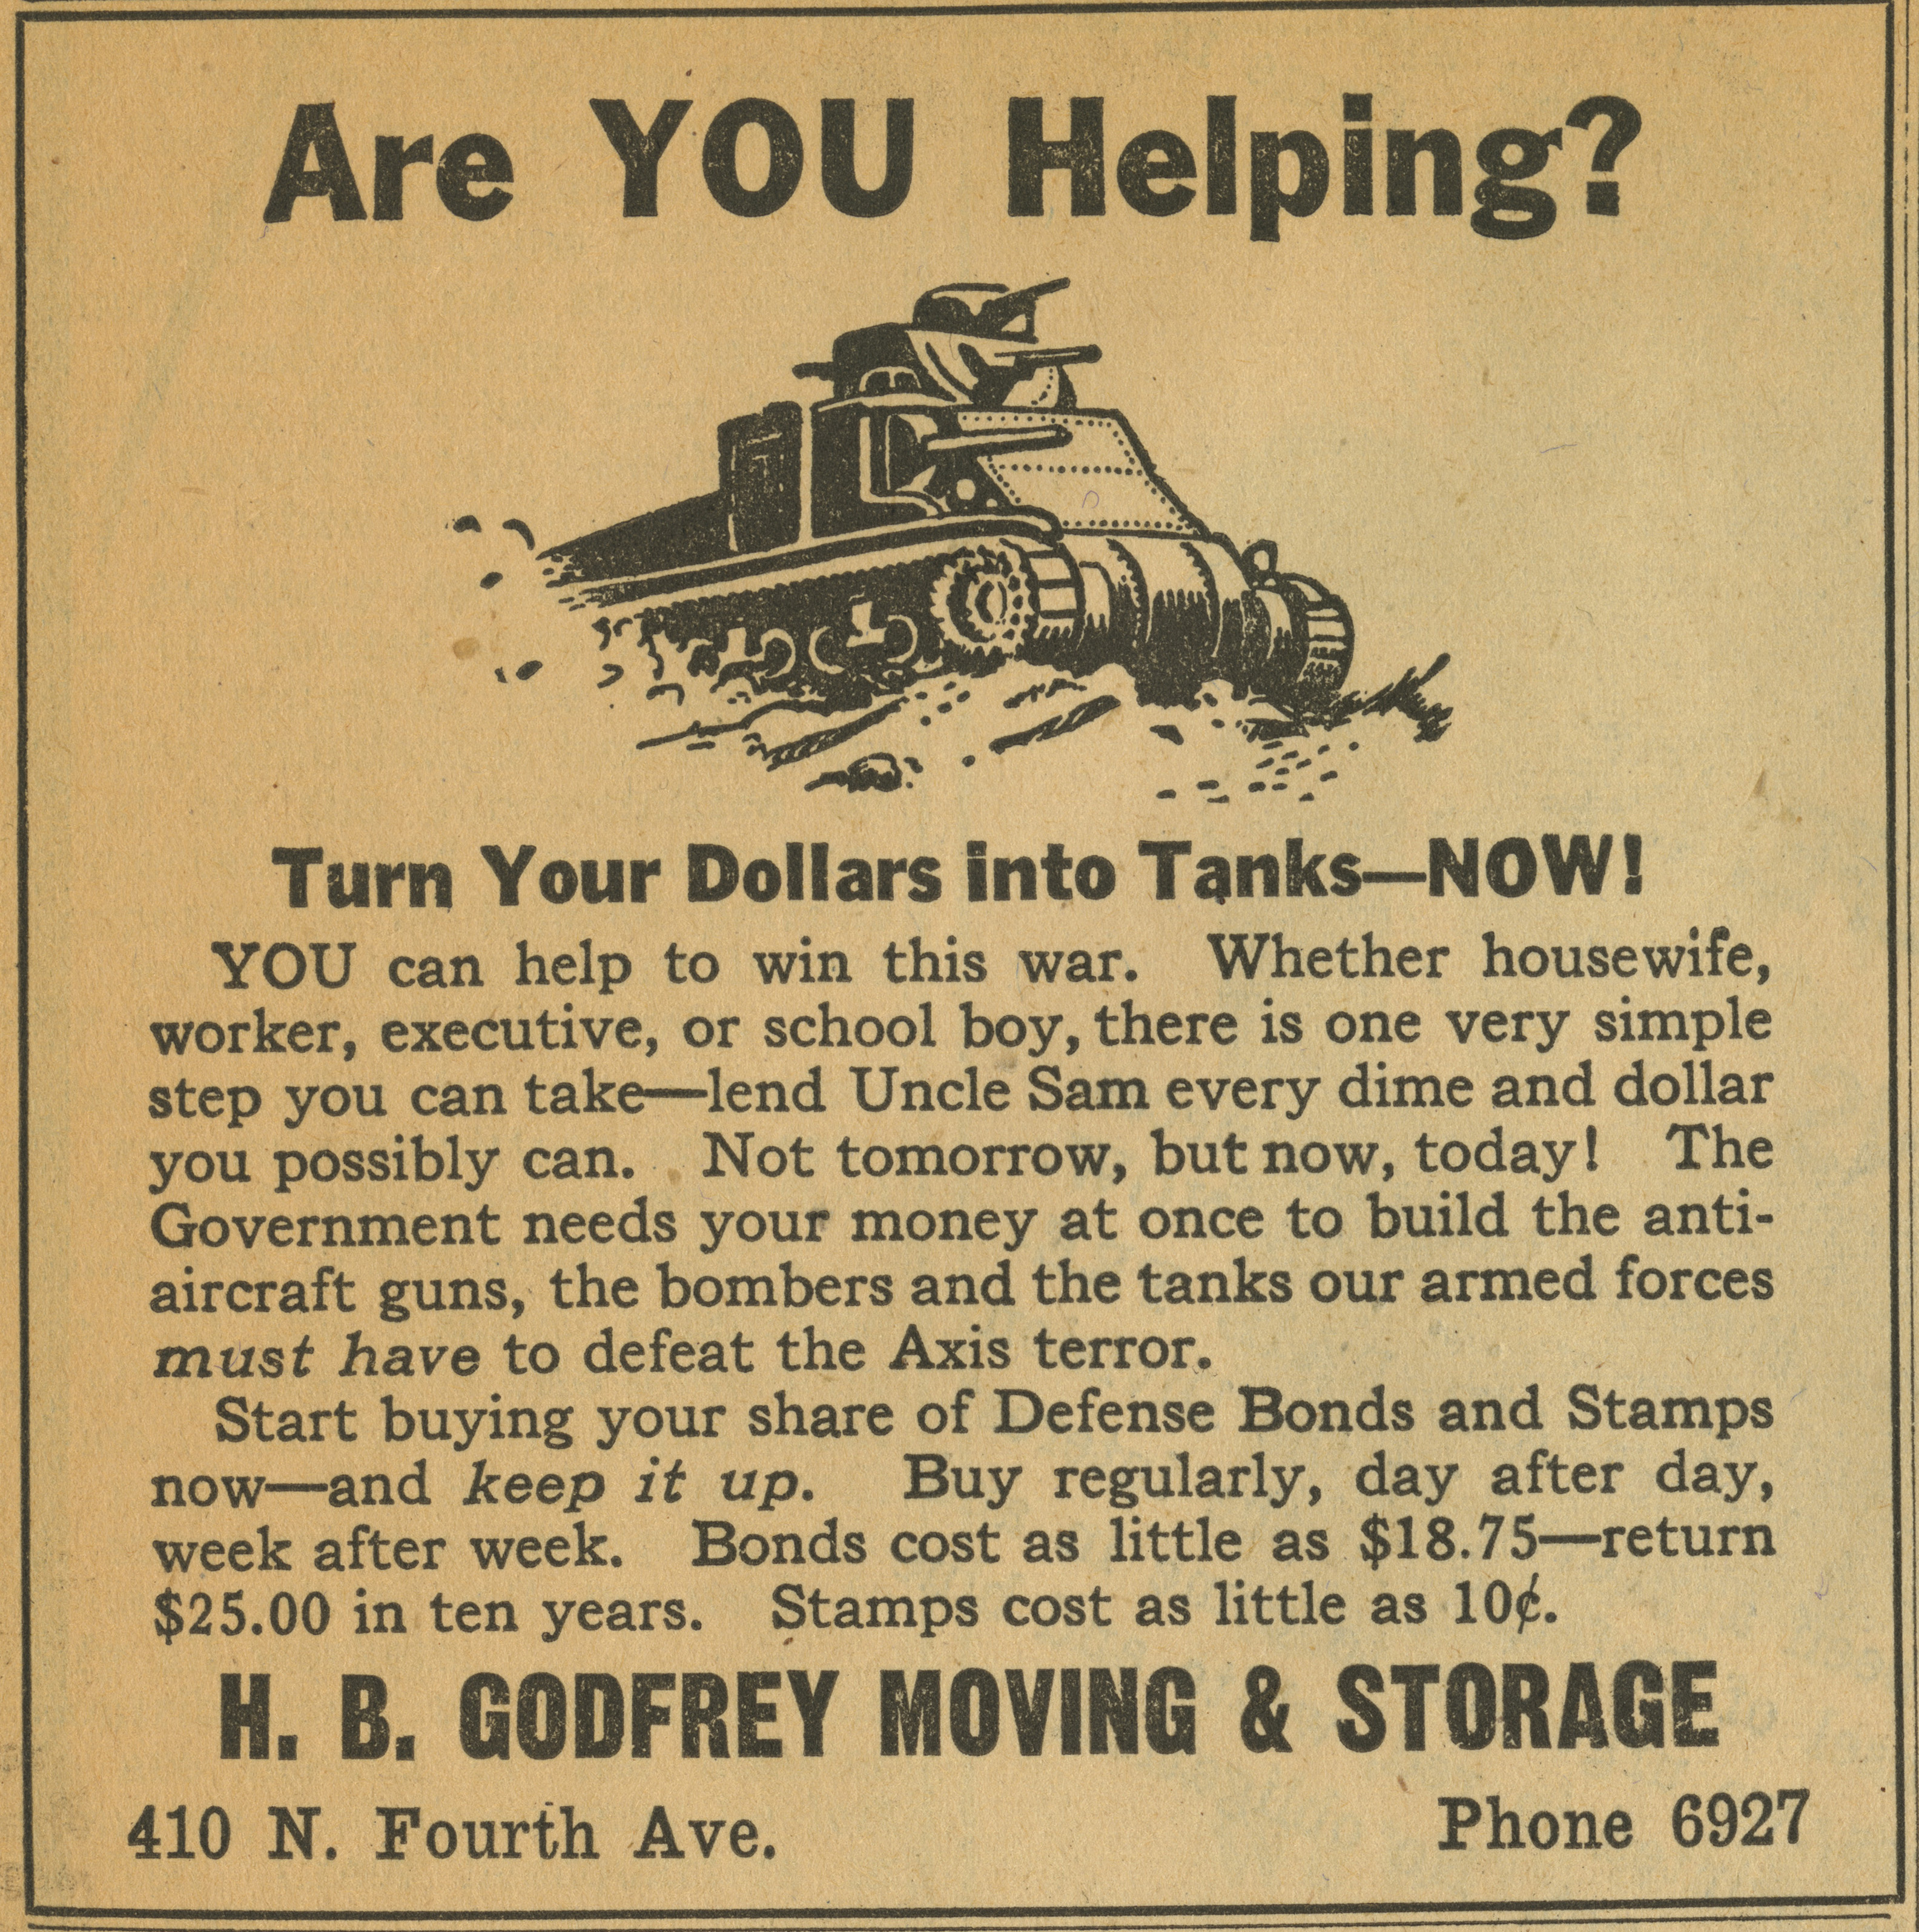 H. B. Godfrey Moving & Storage [advertisement] image